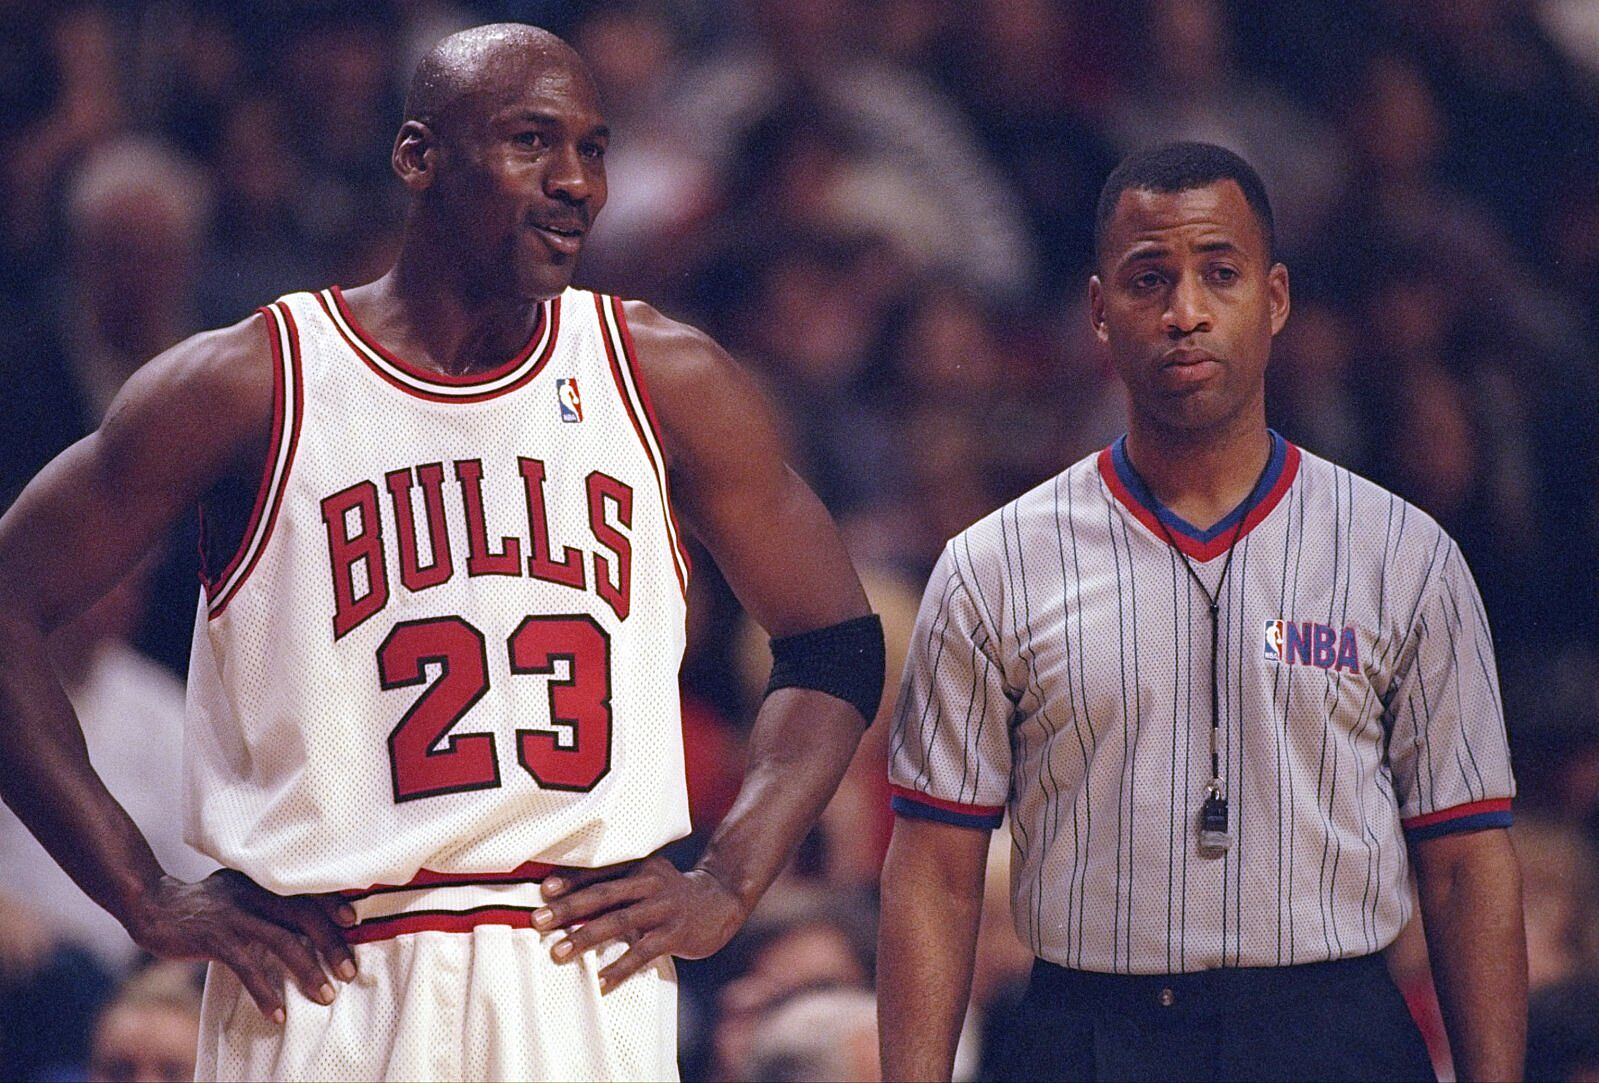 b032e2fe88 27 Dec 1997: Guard Michael Jordan of the Chicago Bulls confers with an  official during a game against the Atlanta Hawks at the United Center in  Chicago, ...